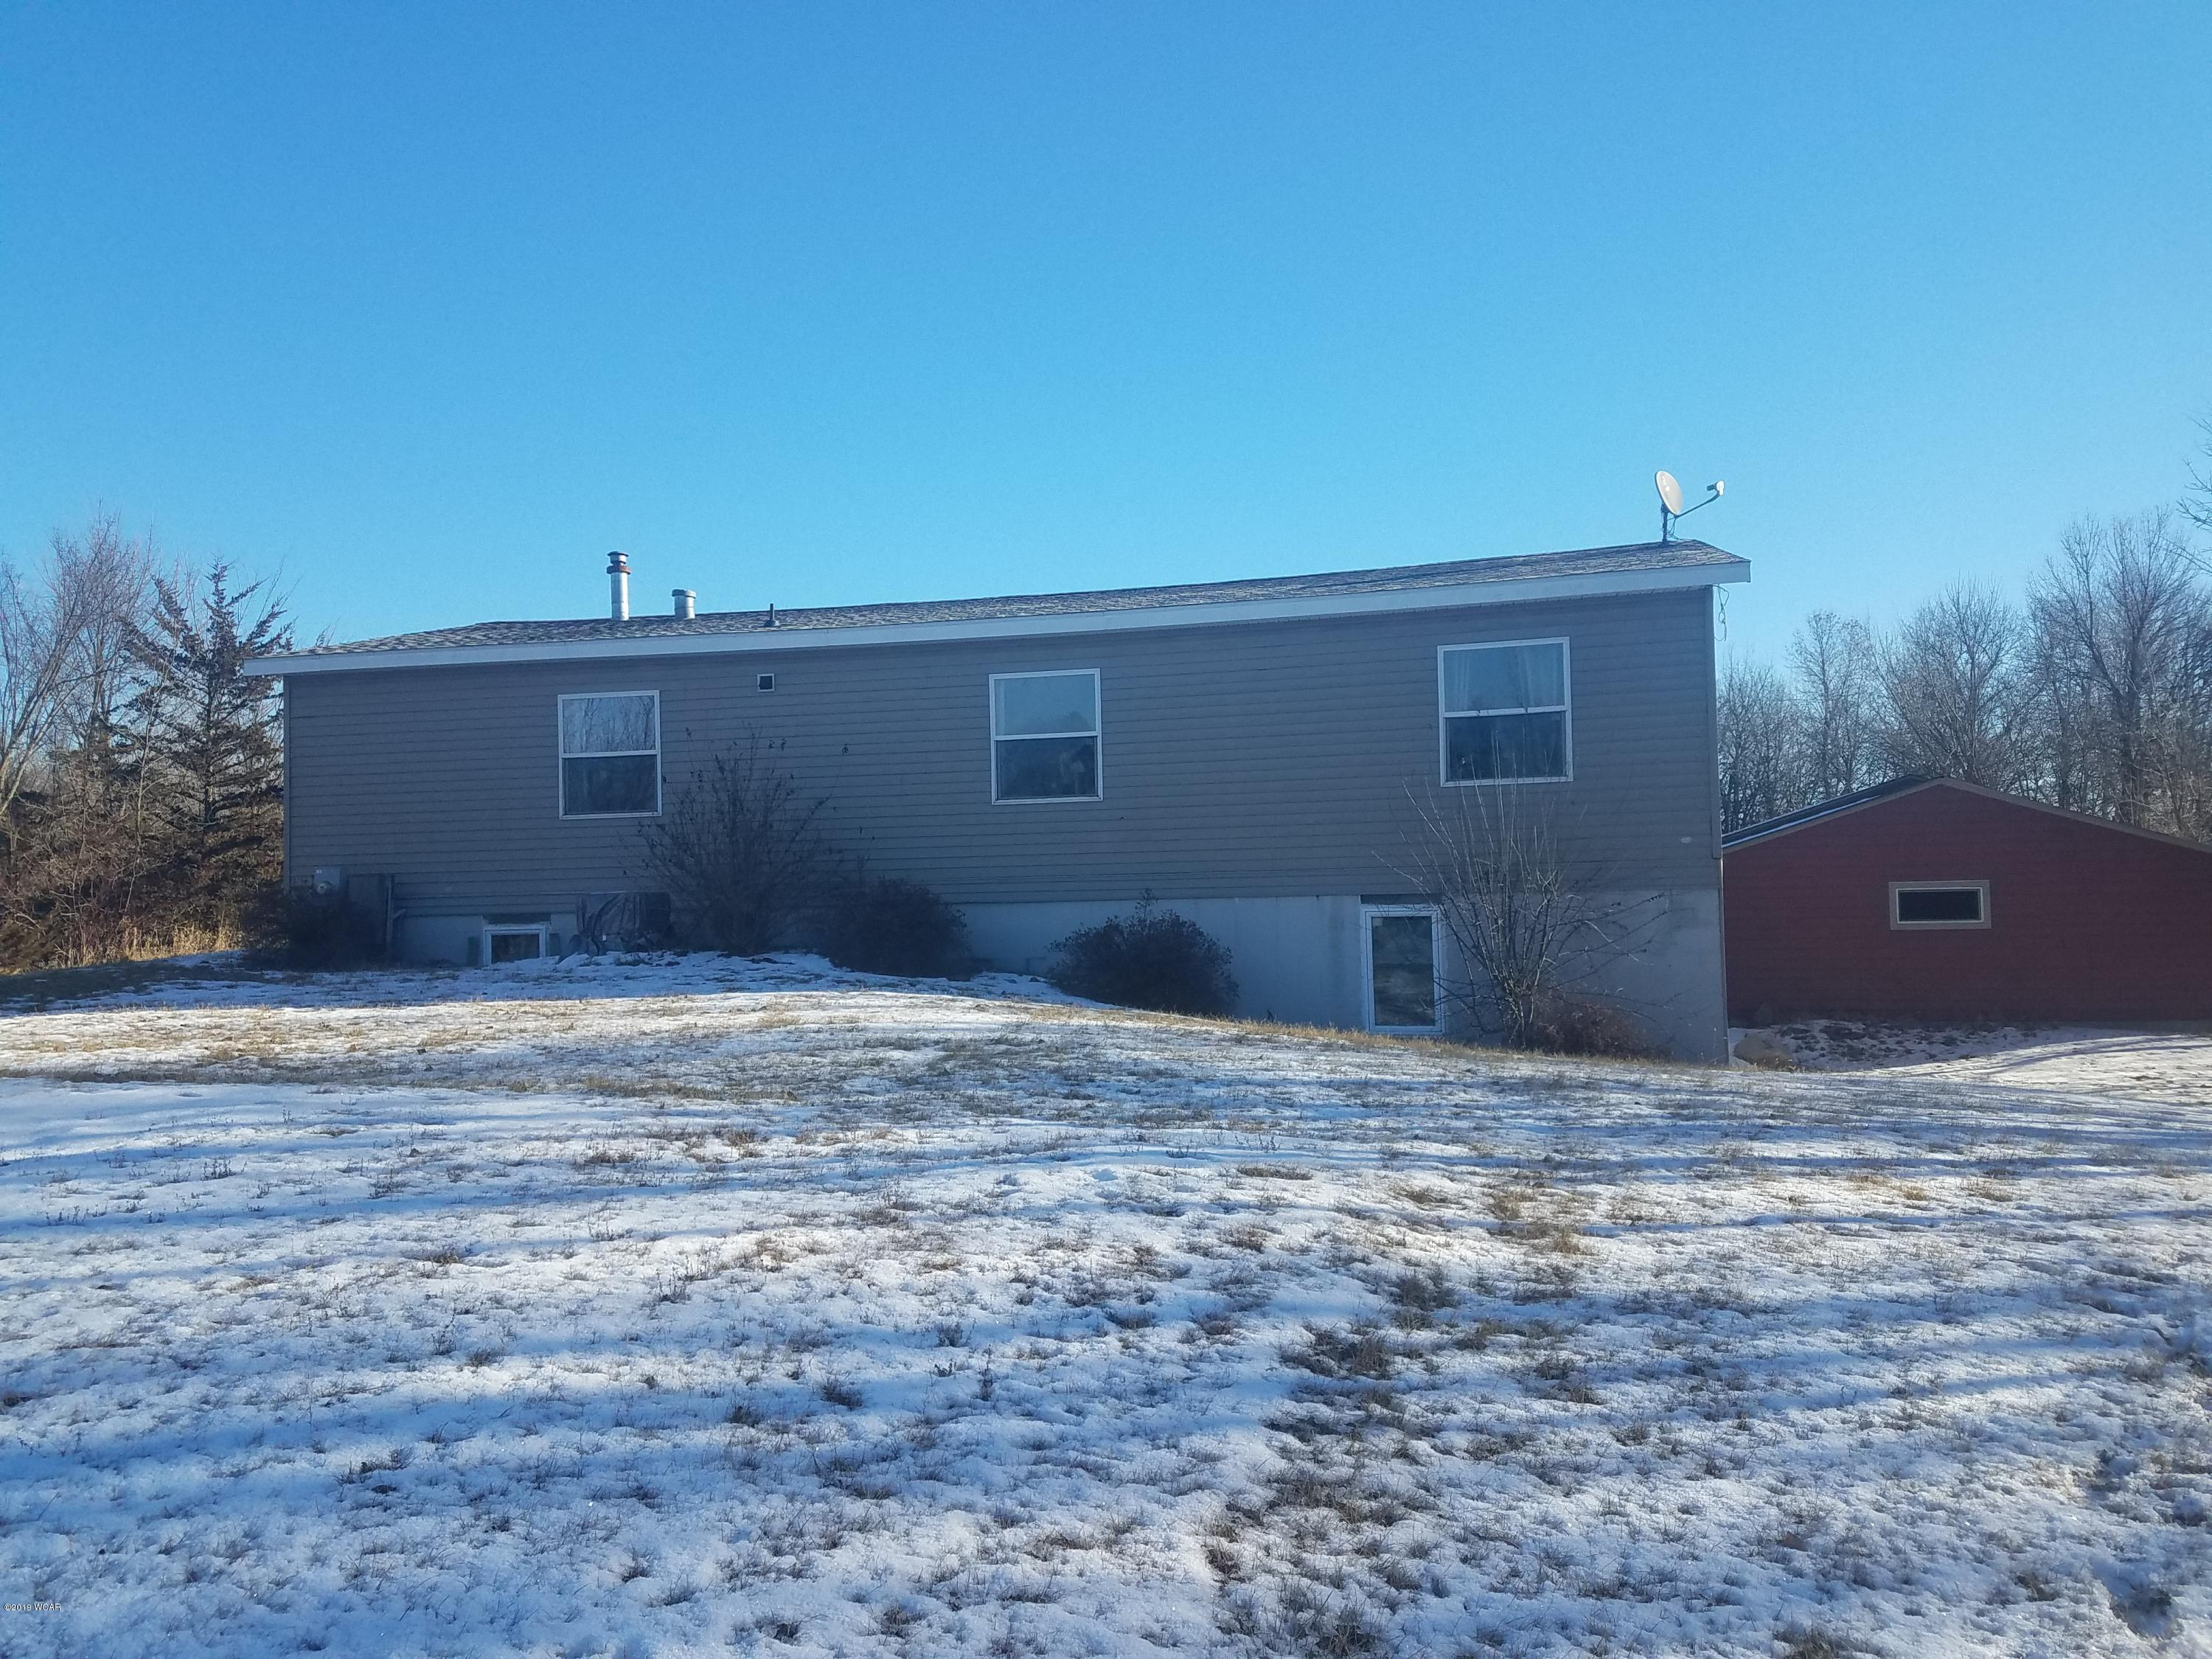 15210 72nd Street,Spicer,3 Bedrooms Bedrooms,3 BathroomsBathrooms,Single Family,72nd Street,6033228